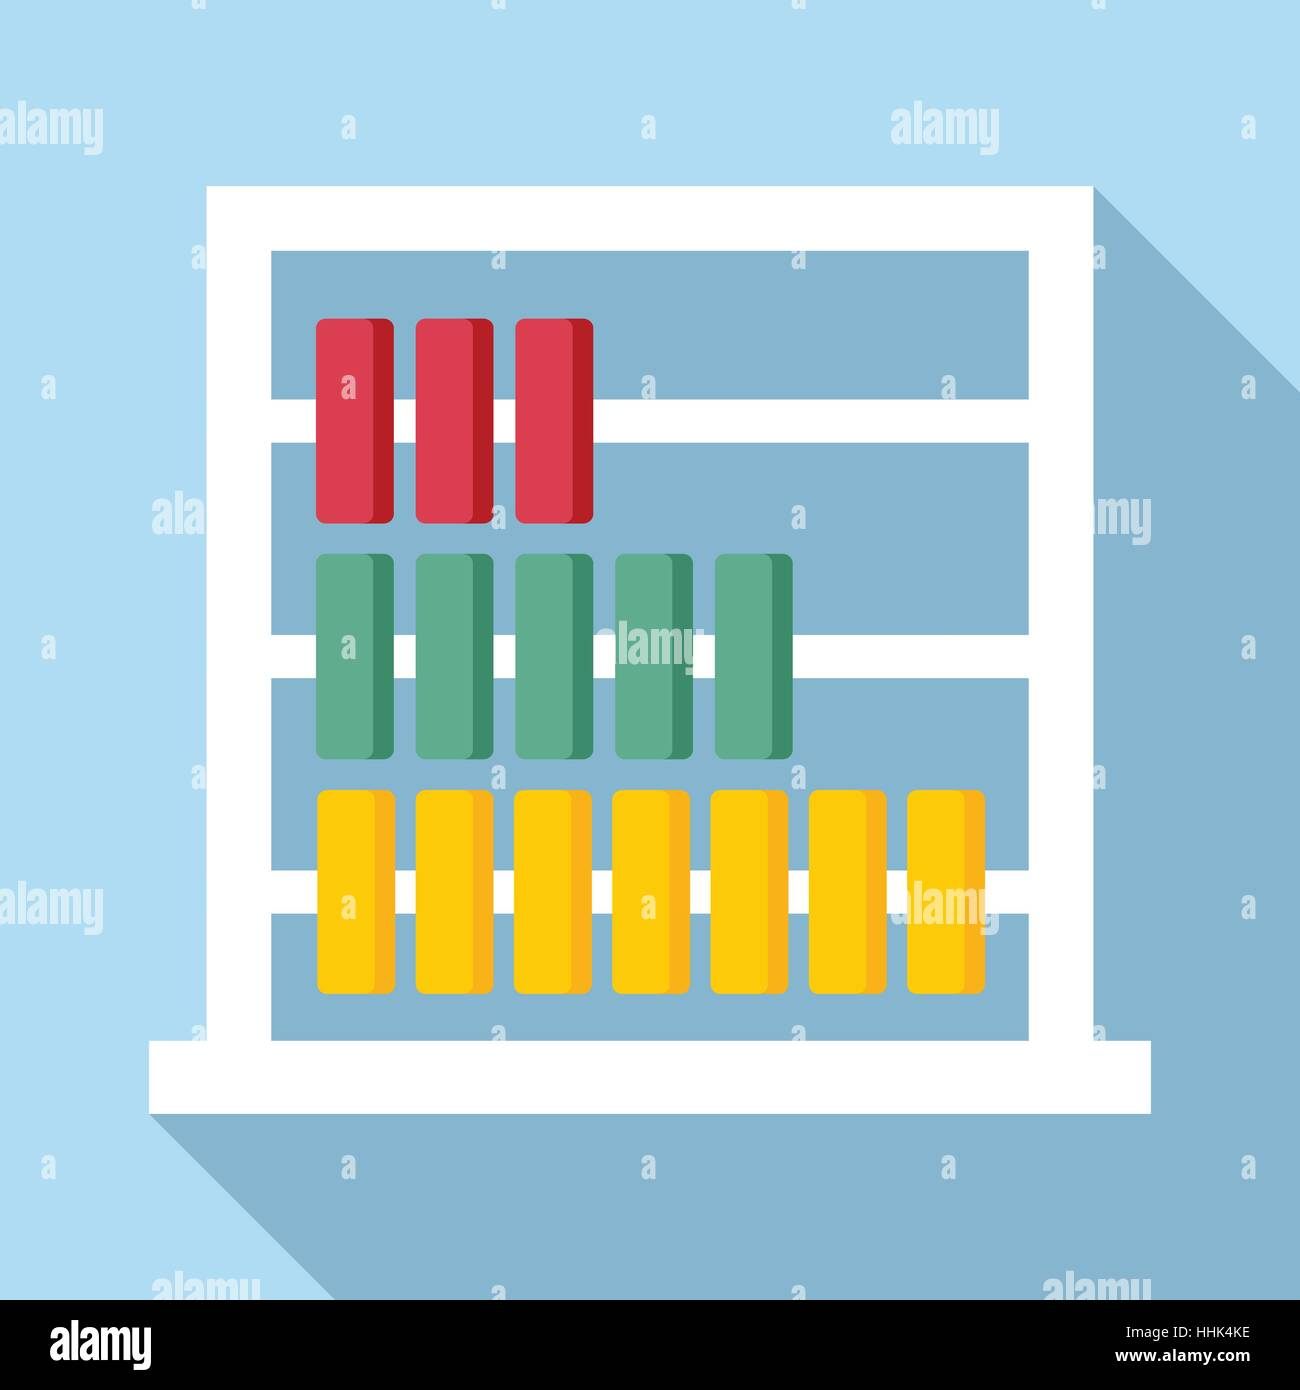 Children Learn Abacus Stock Photos & Children Learn Abacus Stock ...